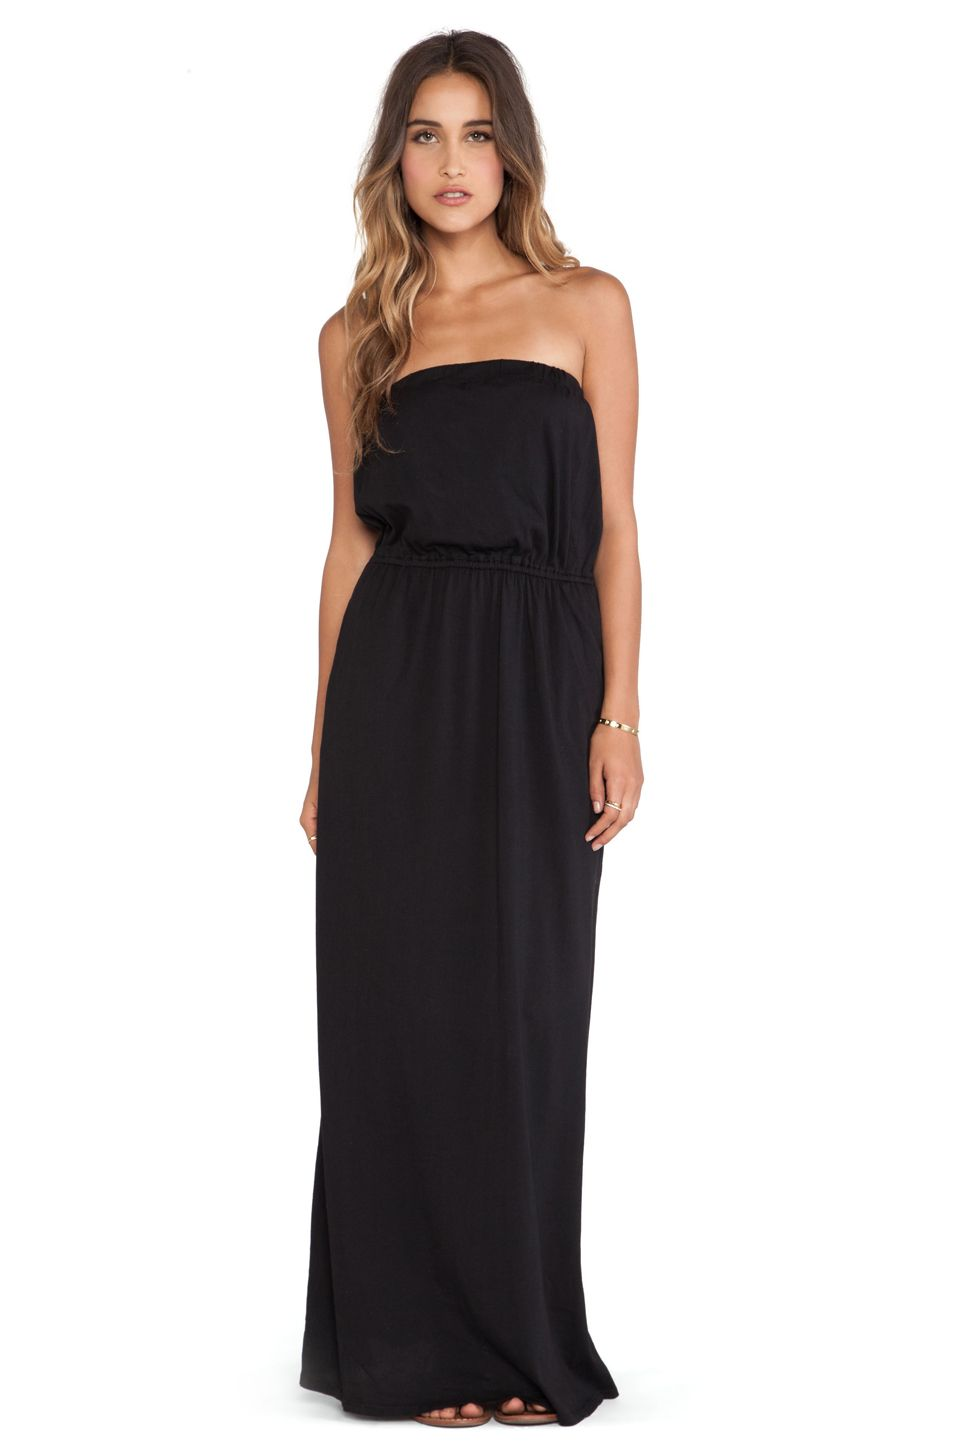 Supreme maxi dress bobi